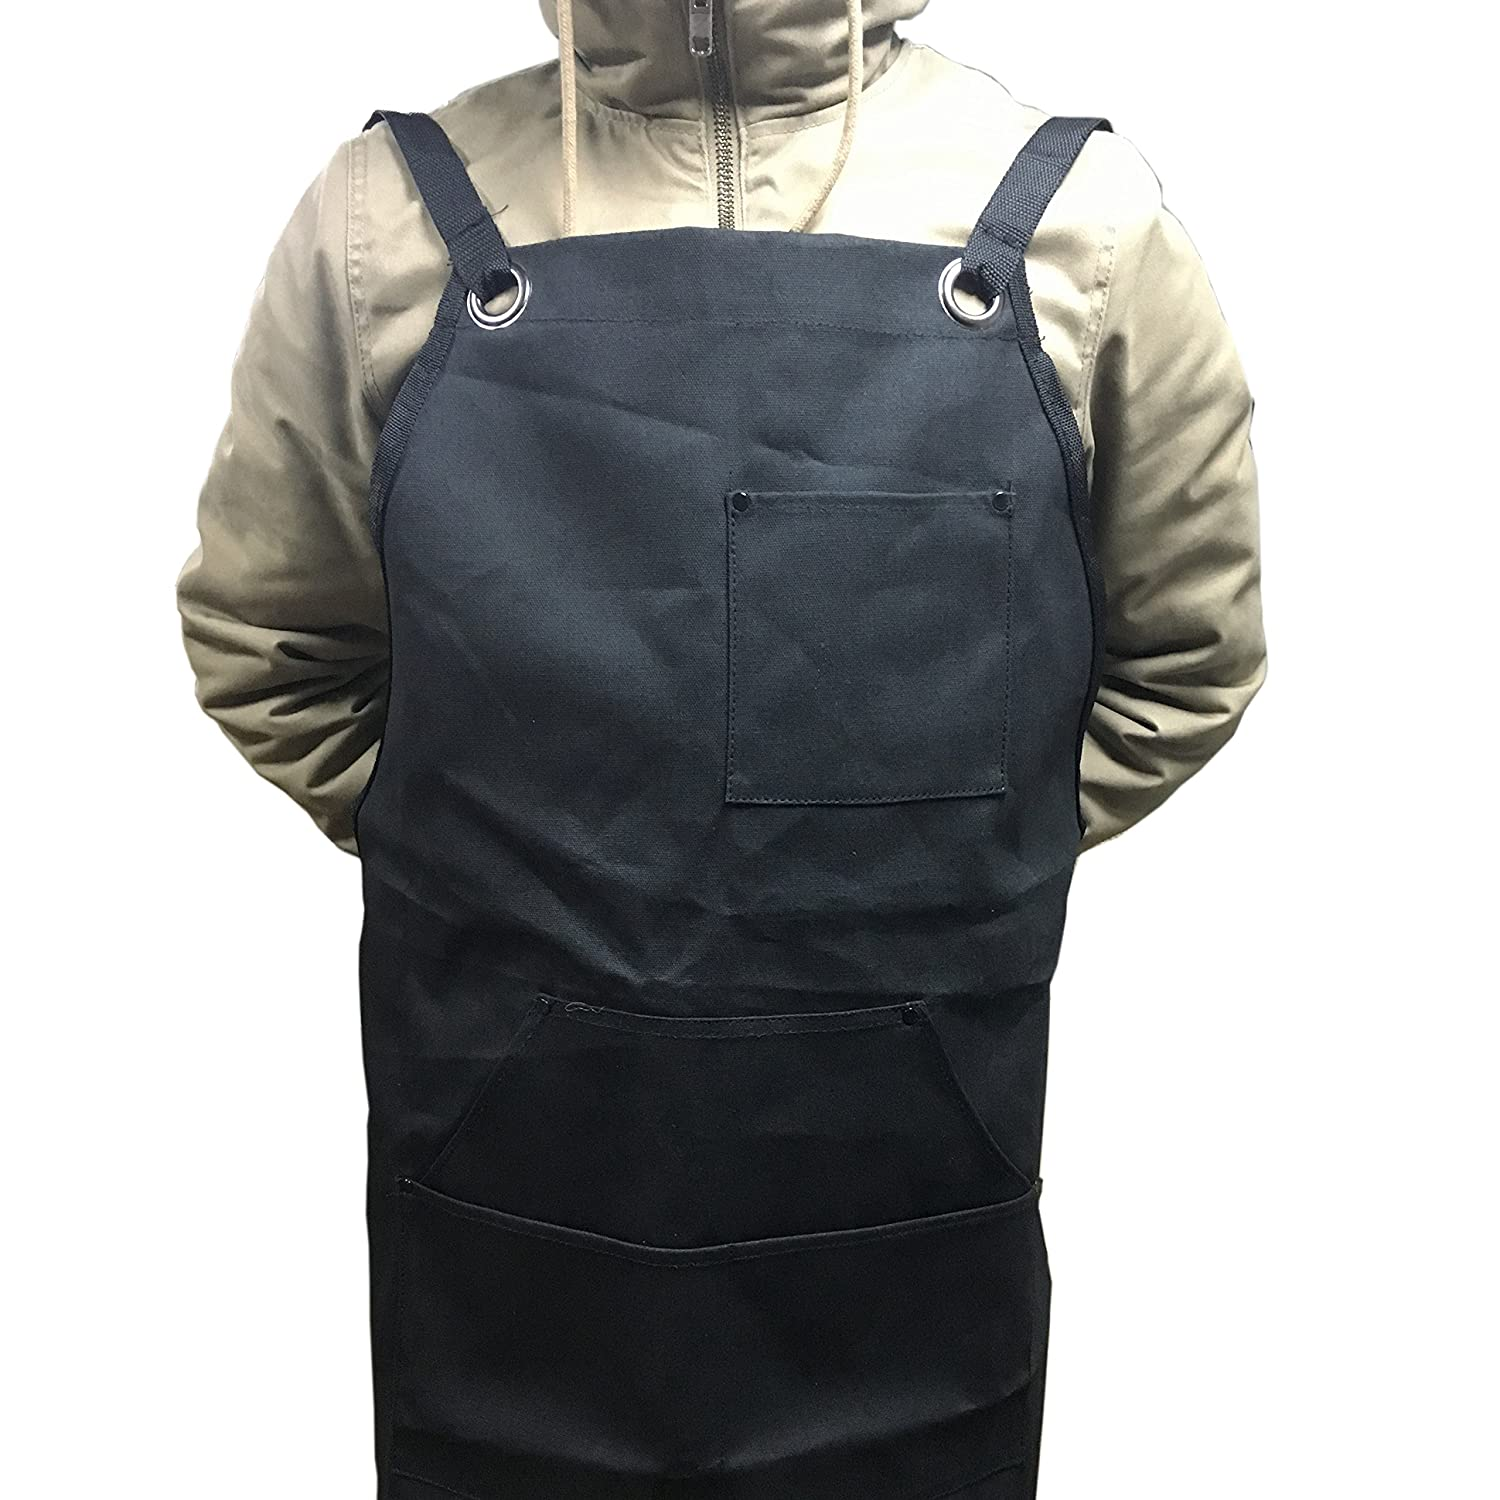 Silfrae Oxford Canvas Work//BBQ Grilling Apron with Tool Pockets Adjustable